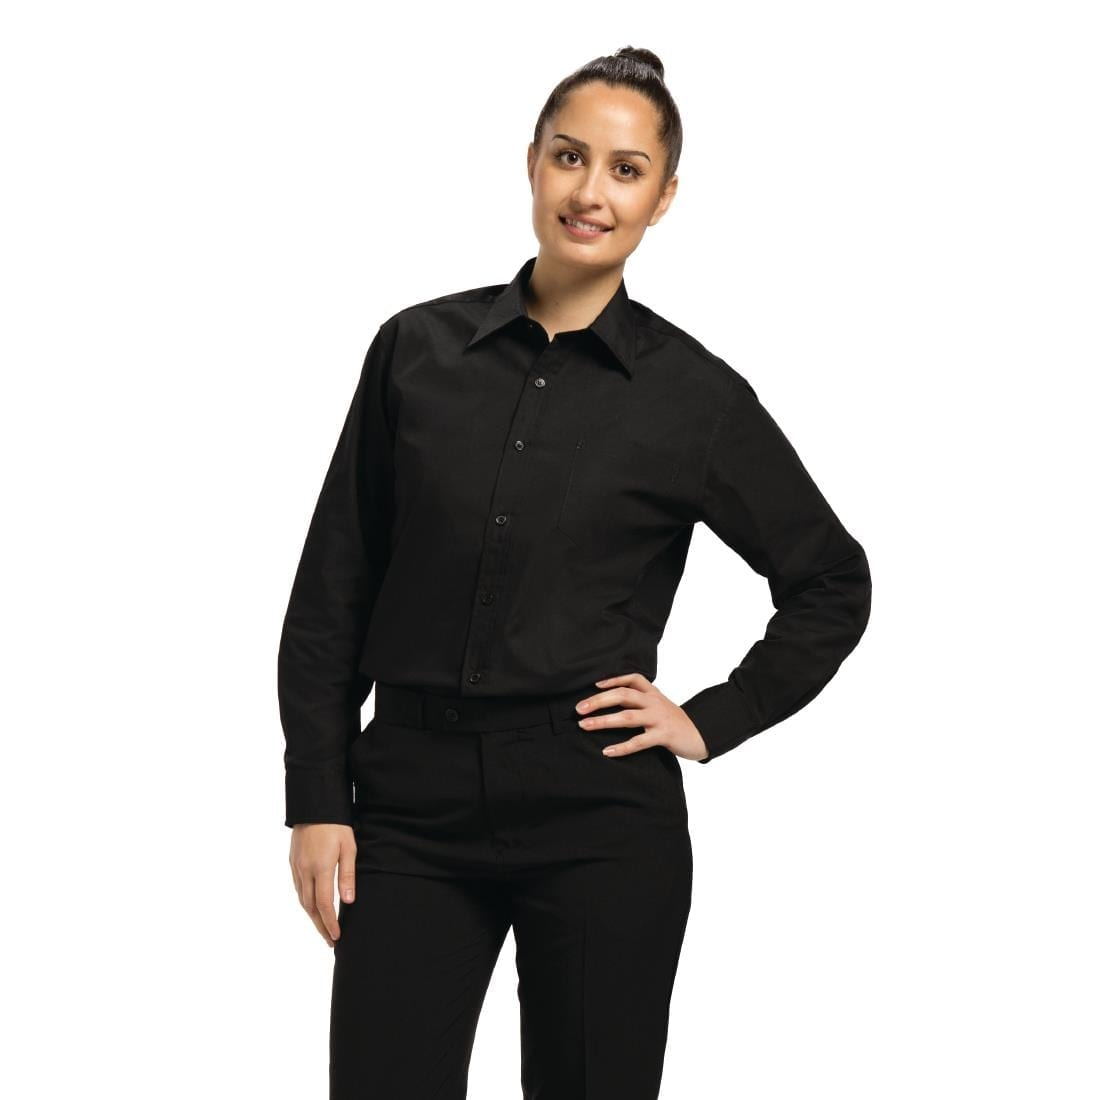 Chef Works Unisex Long Sleeve Dress Shirt Black 2XL